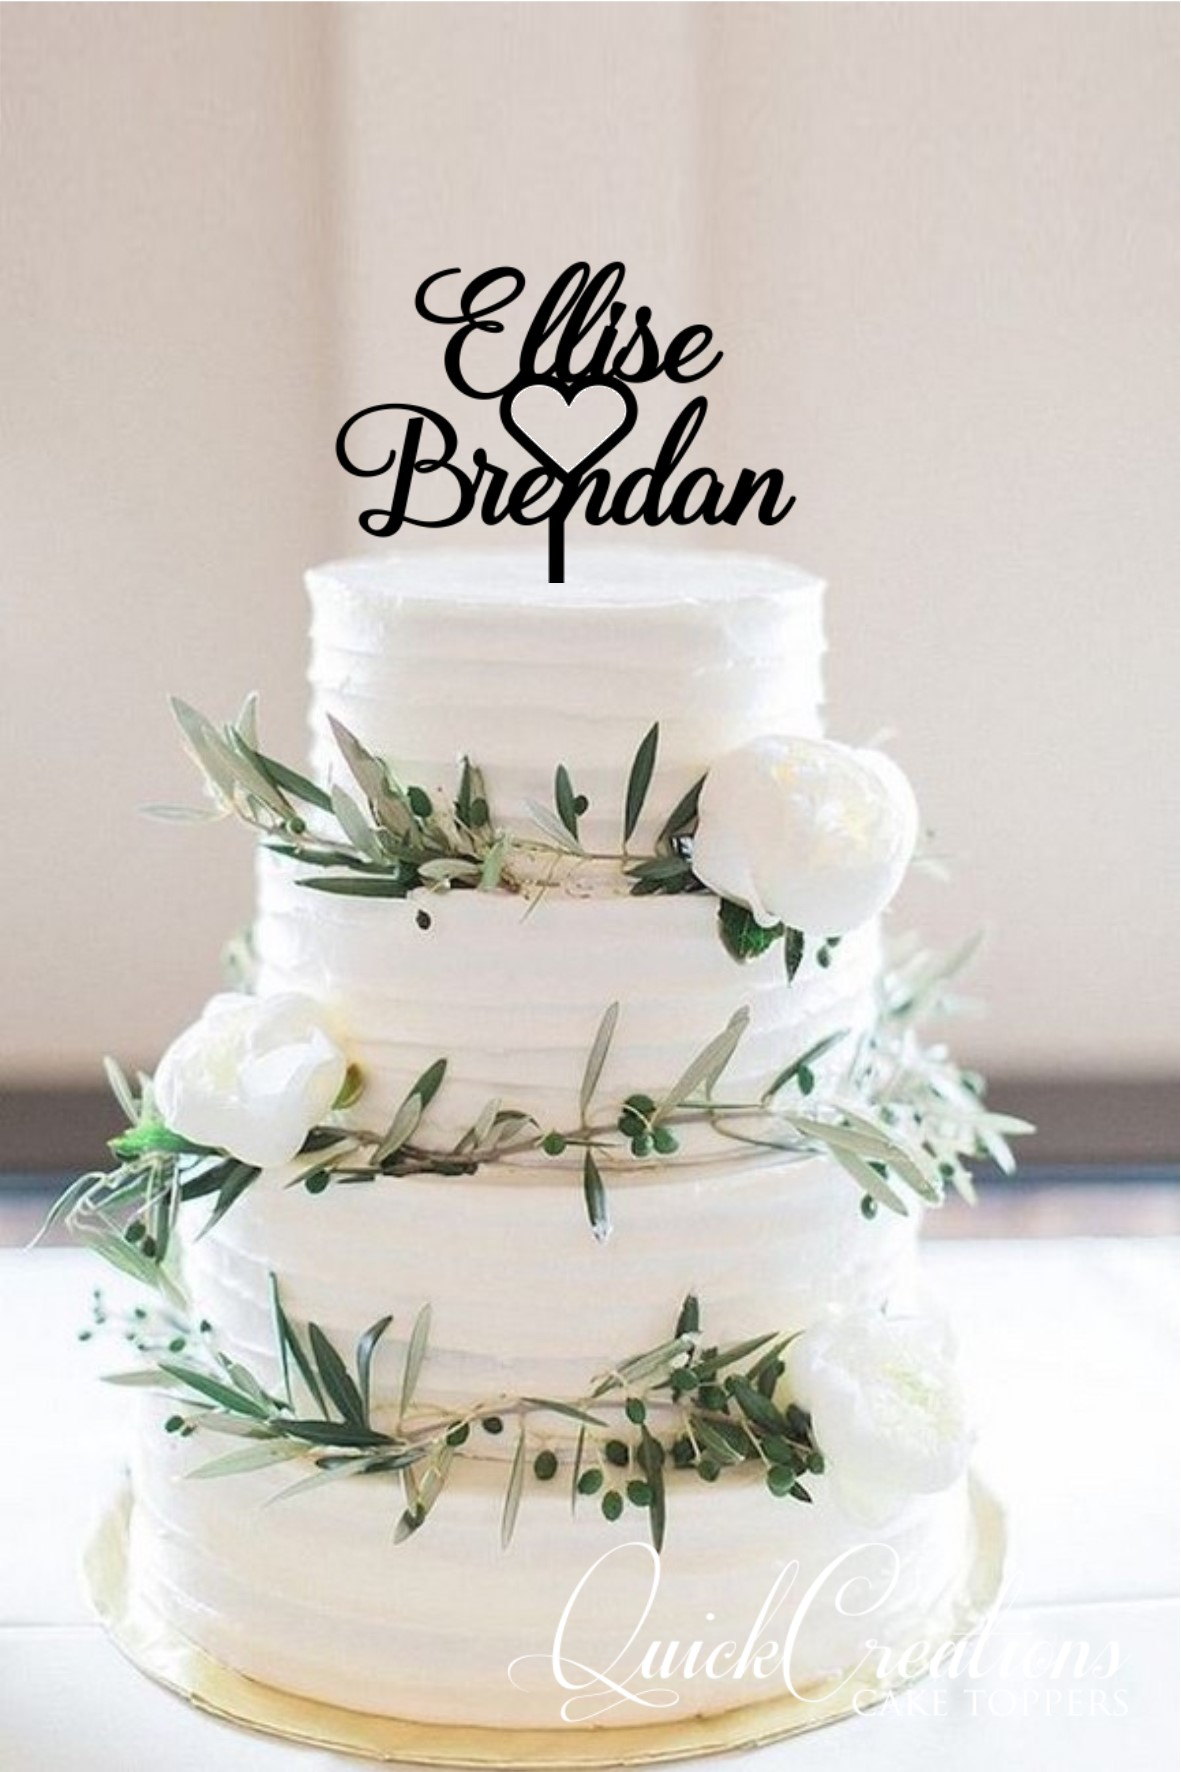 Quick Creations Cake Topper - Eliese & Brendon